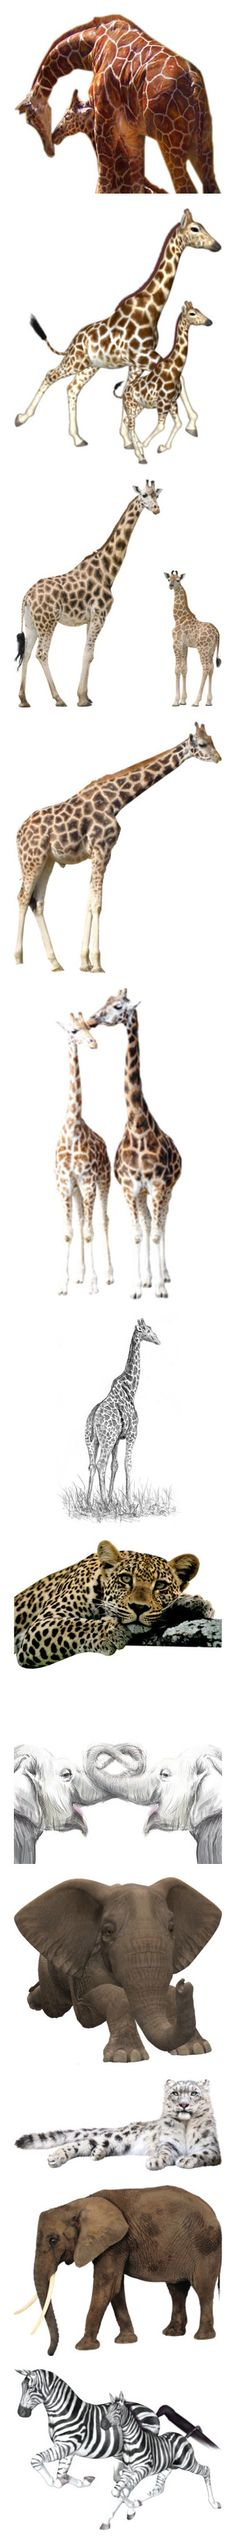 """animals in the wild"" by loves-elephants ❤ liked on Polyvore featuring animals, giraffes, nature, fillers, drawings, backgrounds, giraffe, home, home decor and wall art"